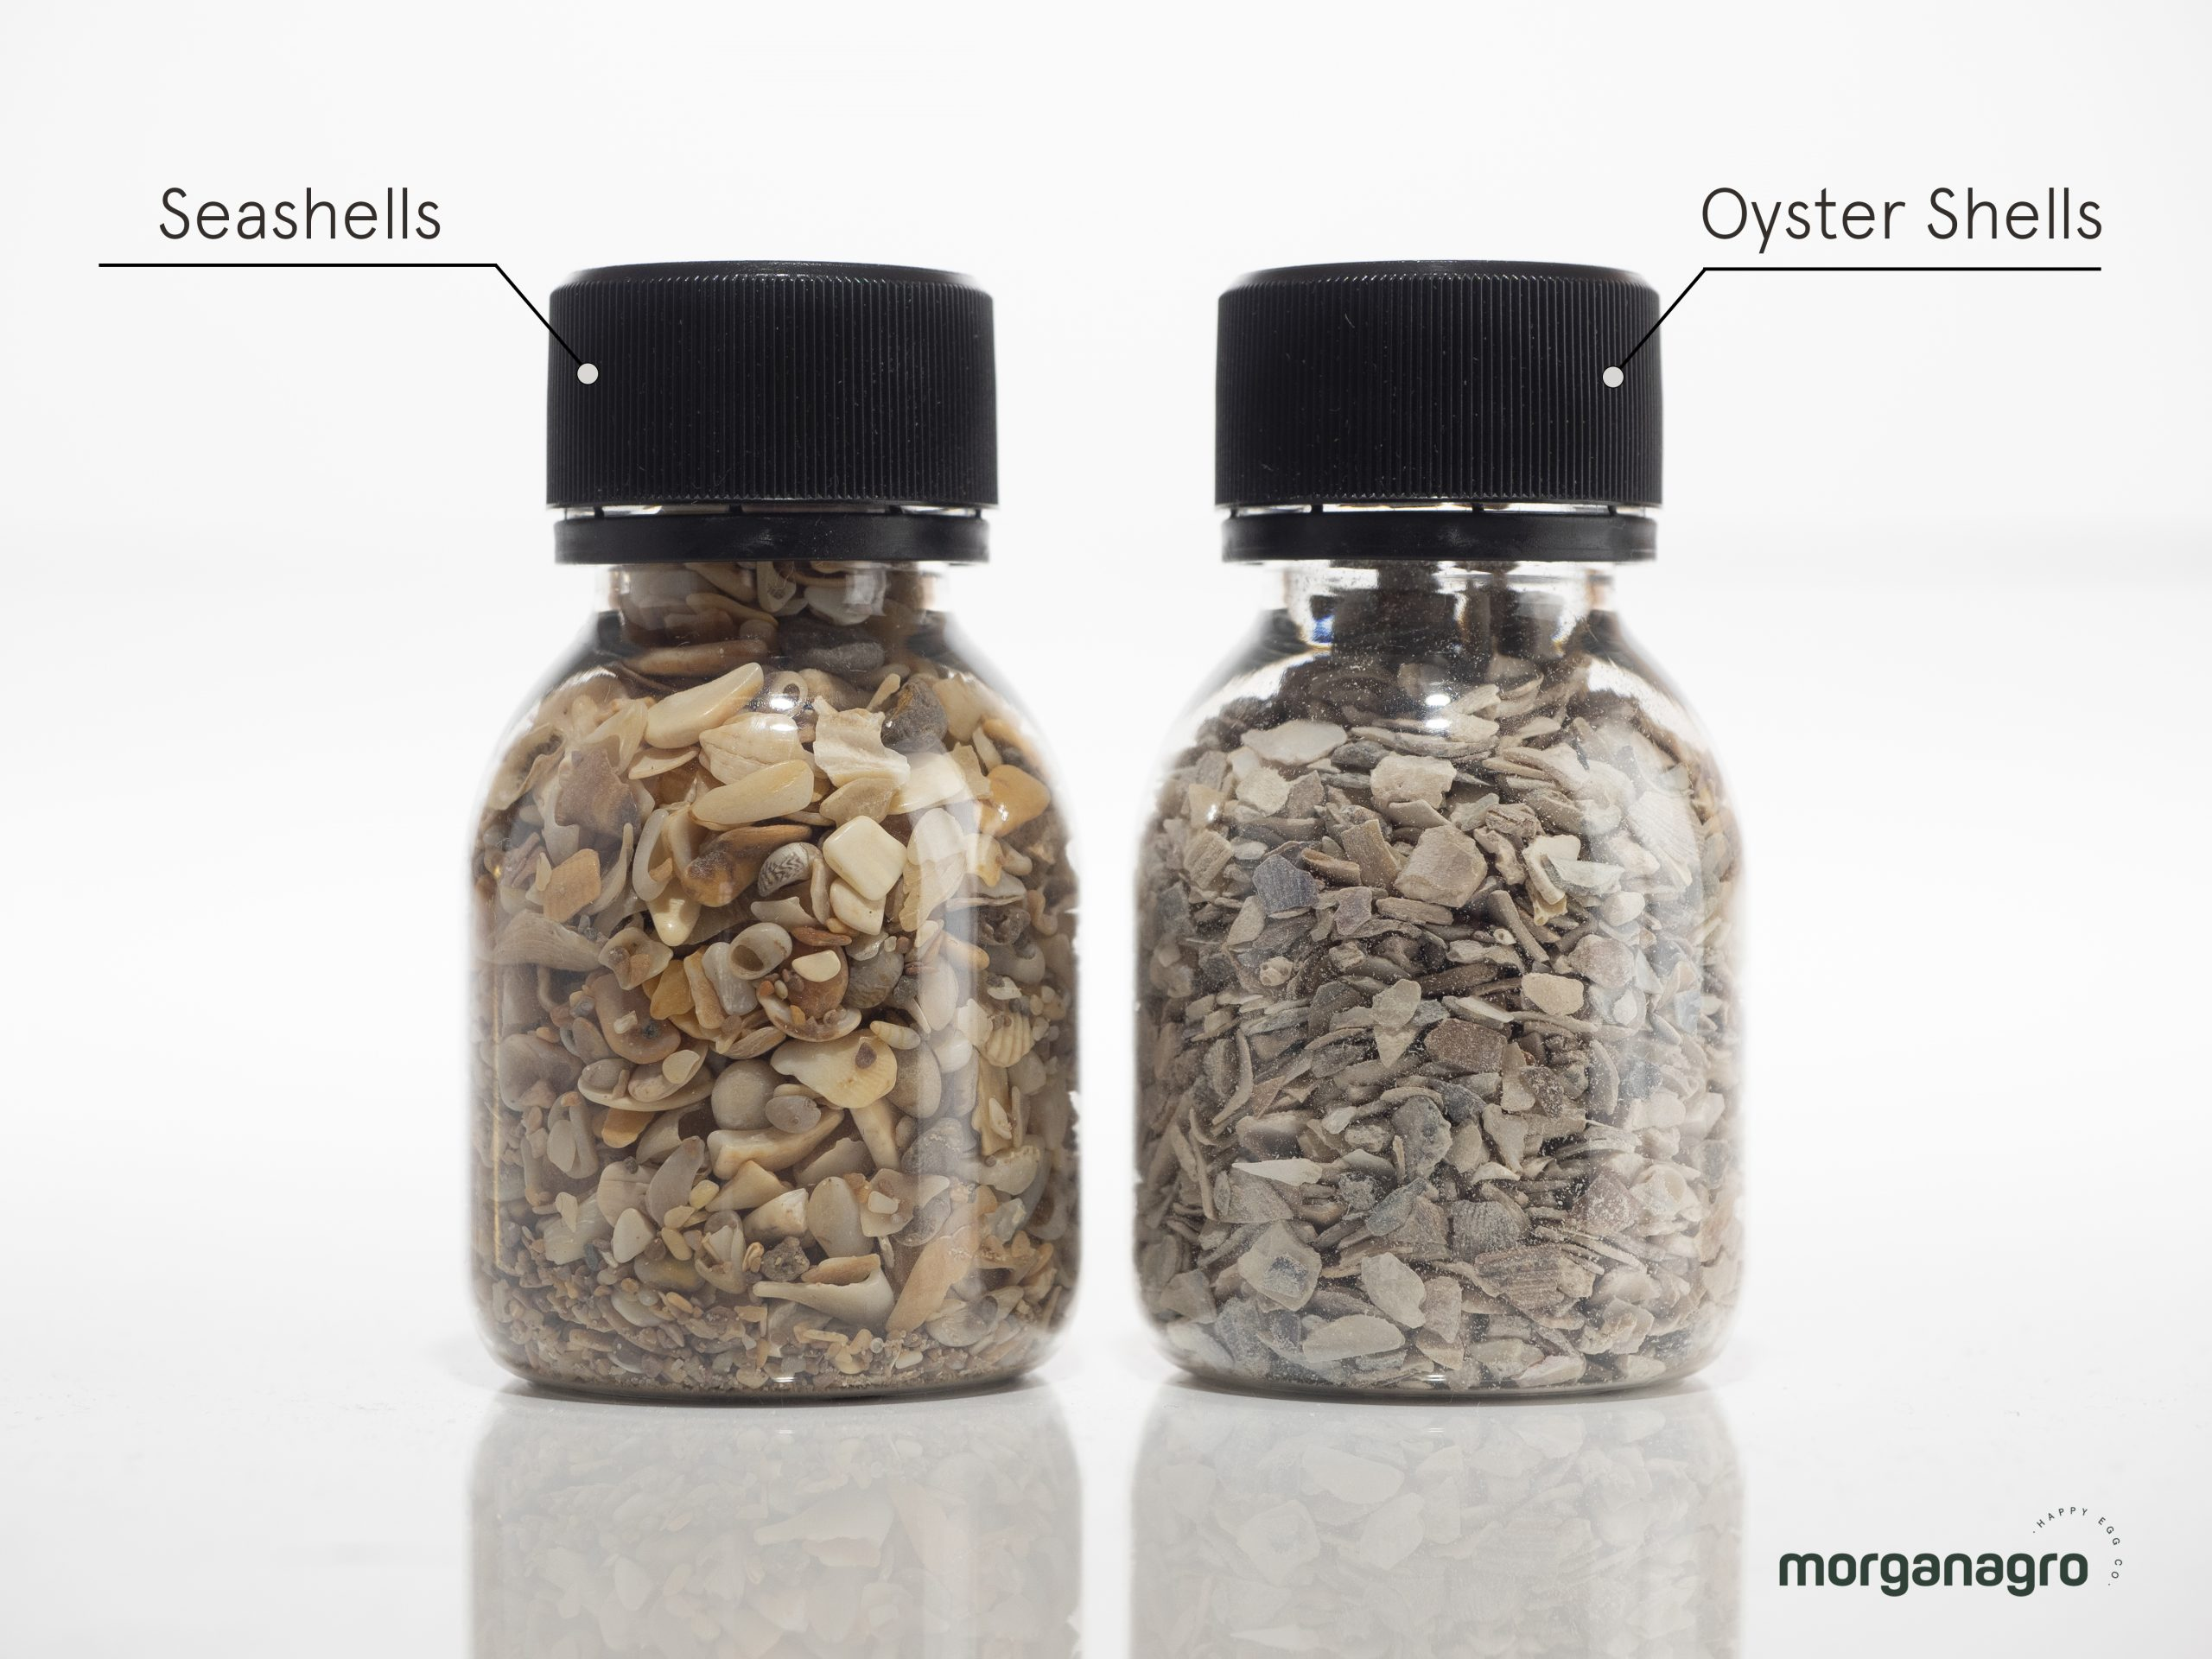 BUT WHY OYSTER SHELLS?